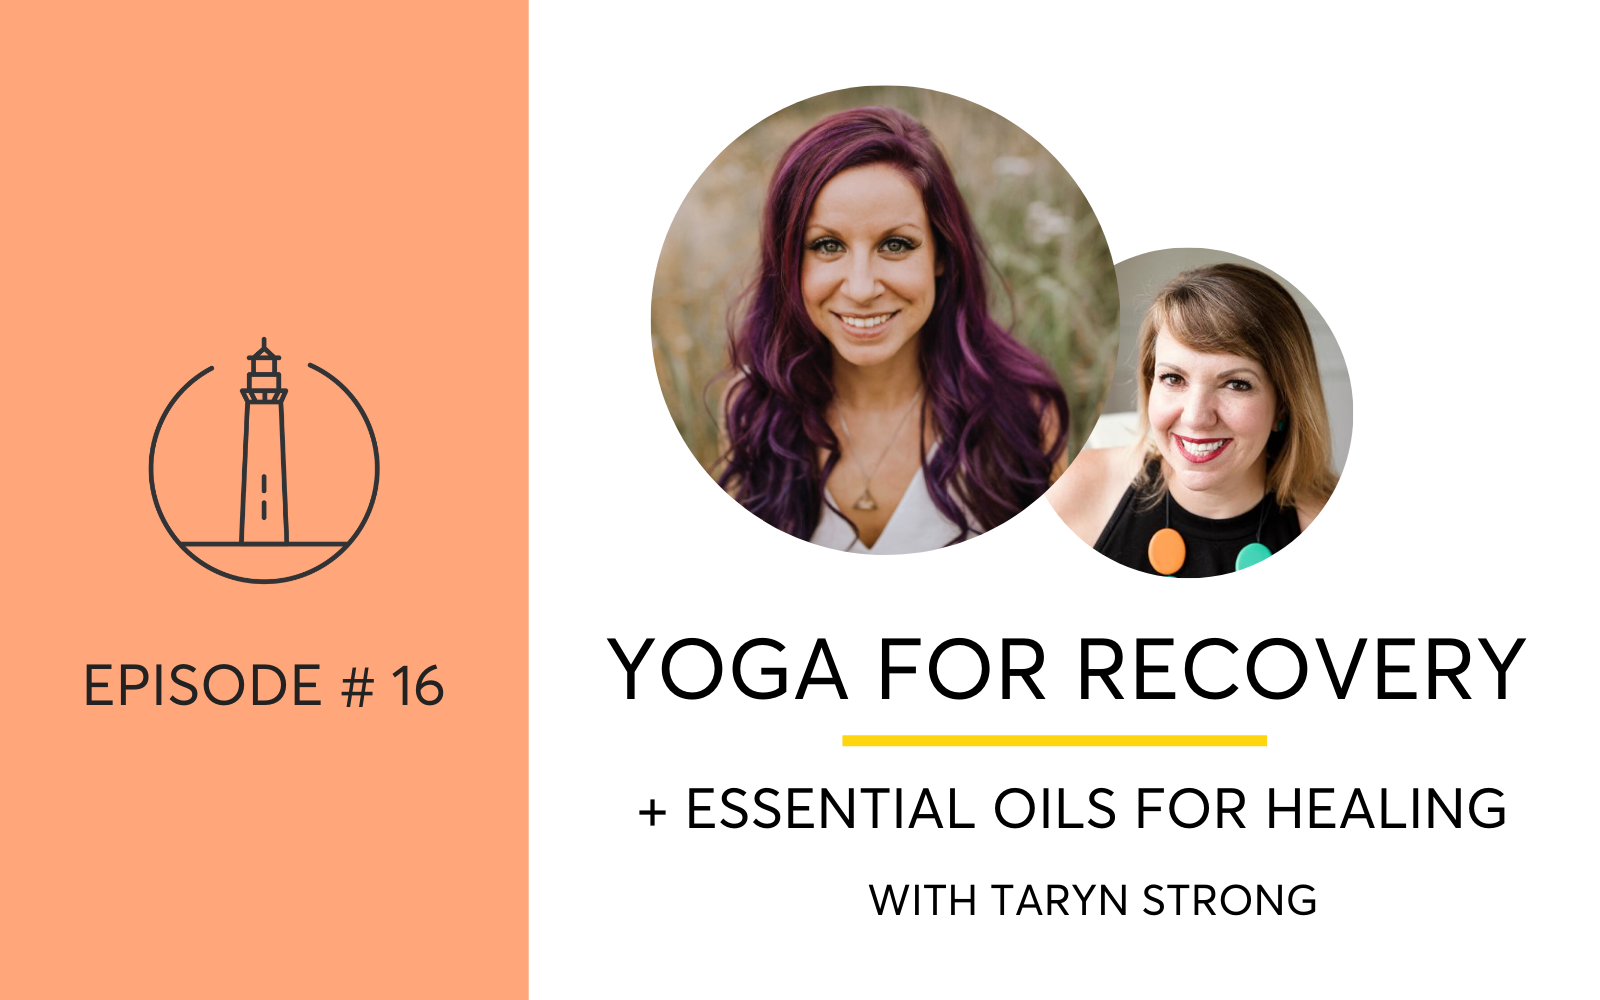 Yoga and Essential Oils For Recovery With Taryn Strong of She Recovers